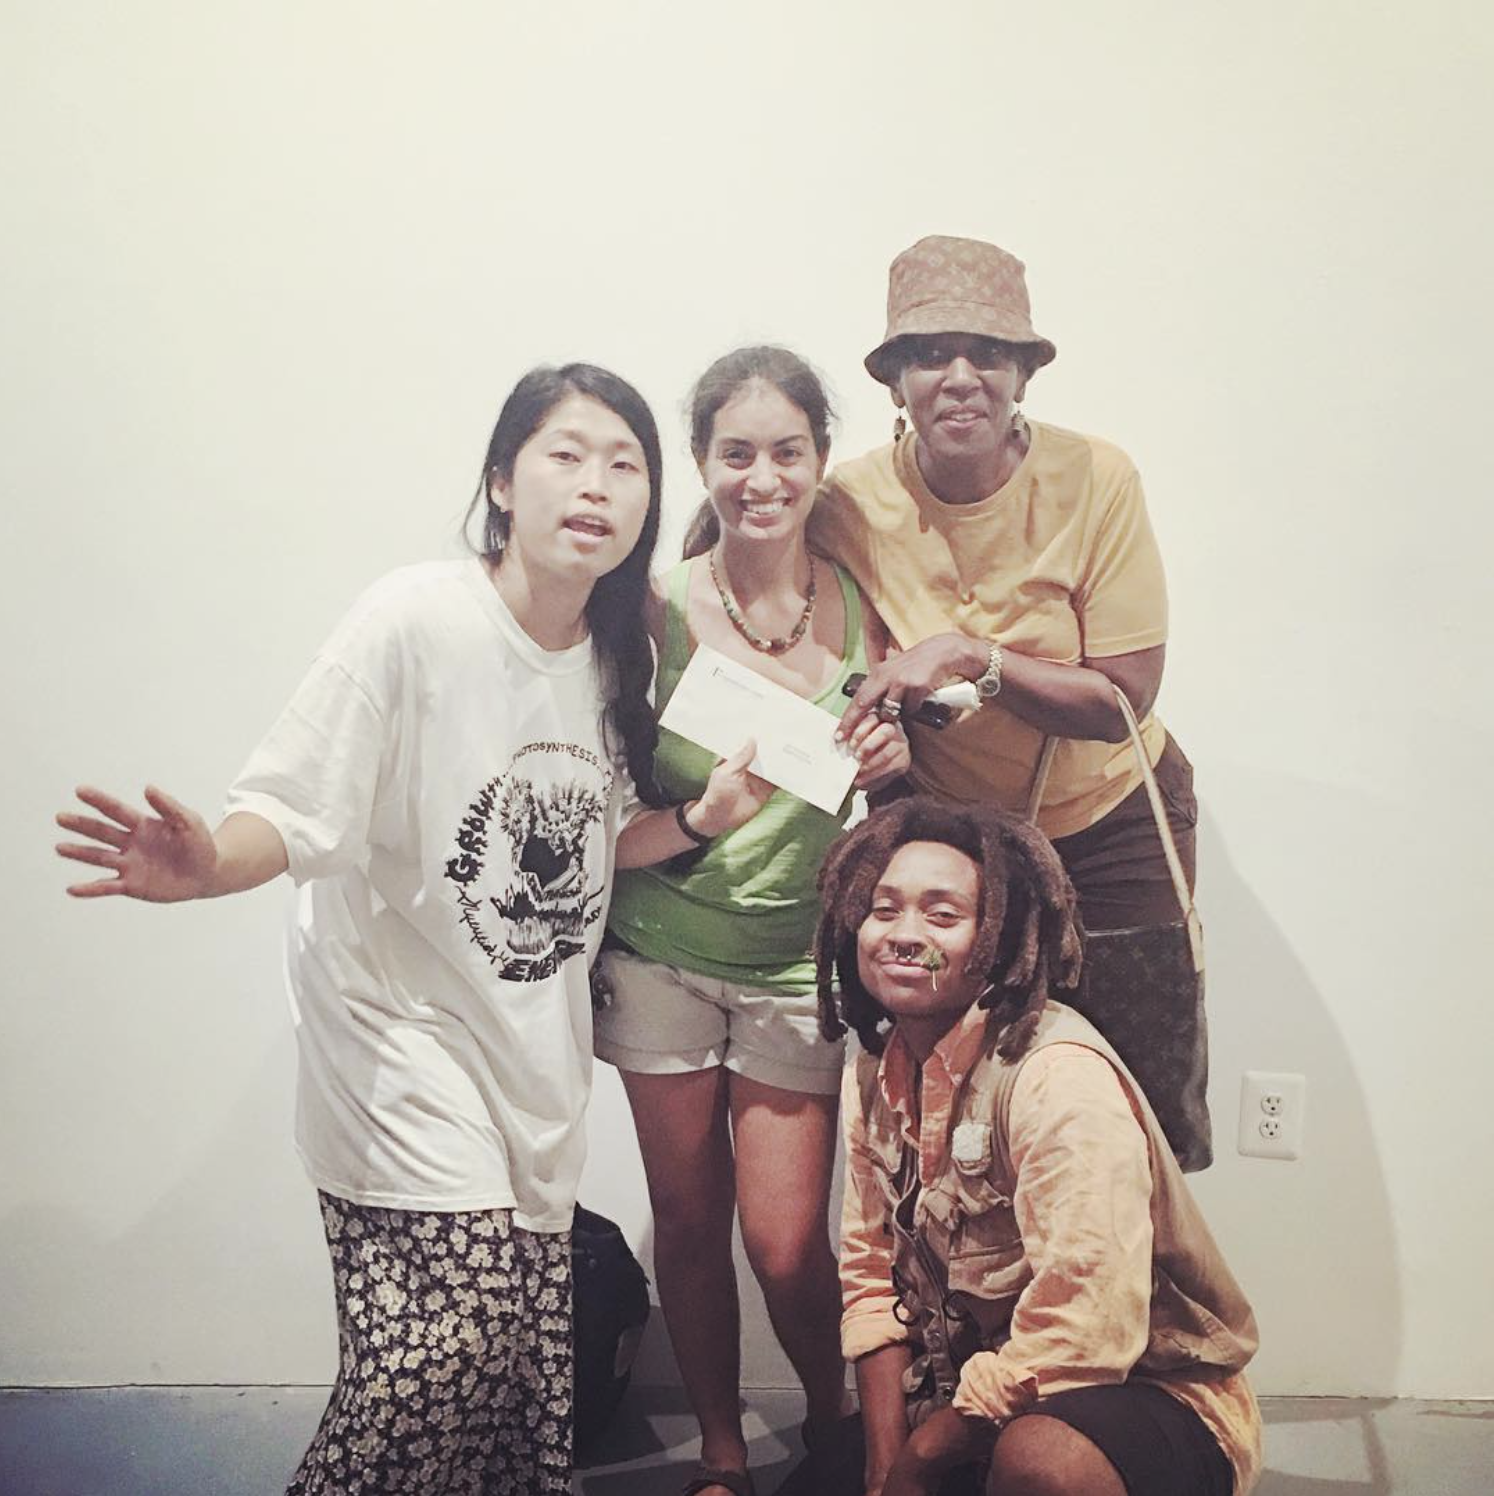 hamiltoniangallerydc     #tbt  to last week at our final  #permacounterculture  show! Beyond thrilled to present a check for $800 to Bread for the City's City Orchard Project, which grows, harvests, and distributes fresh produce to DC residents and food pantries and $1000 to local punk musicians. Volunteer at City Orchard or at other  @breadforthecity  initiatives by visiting their website!